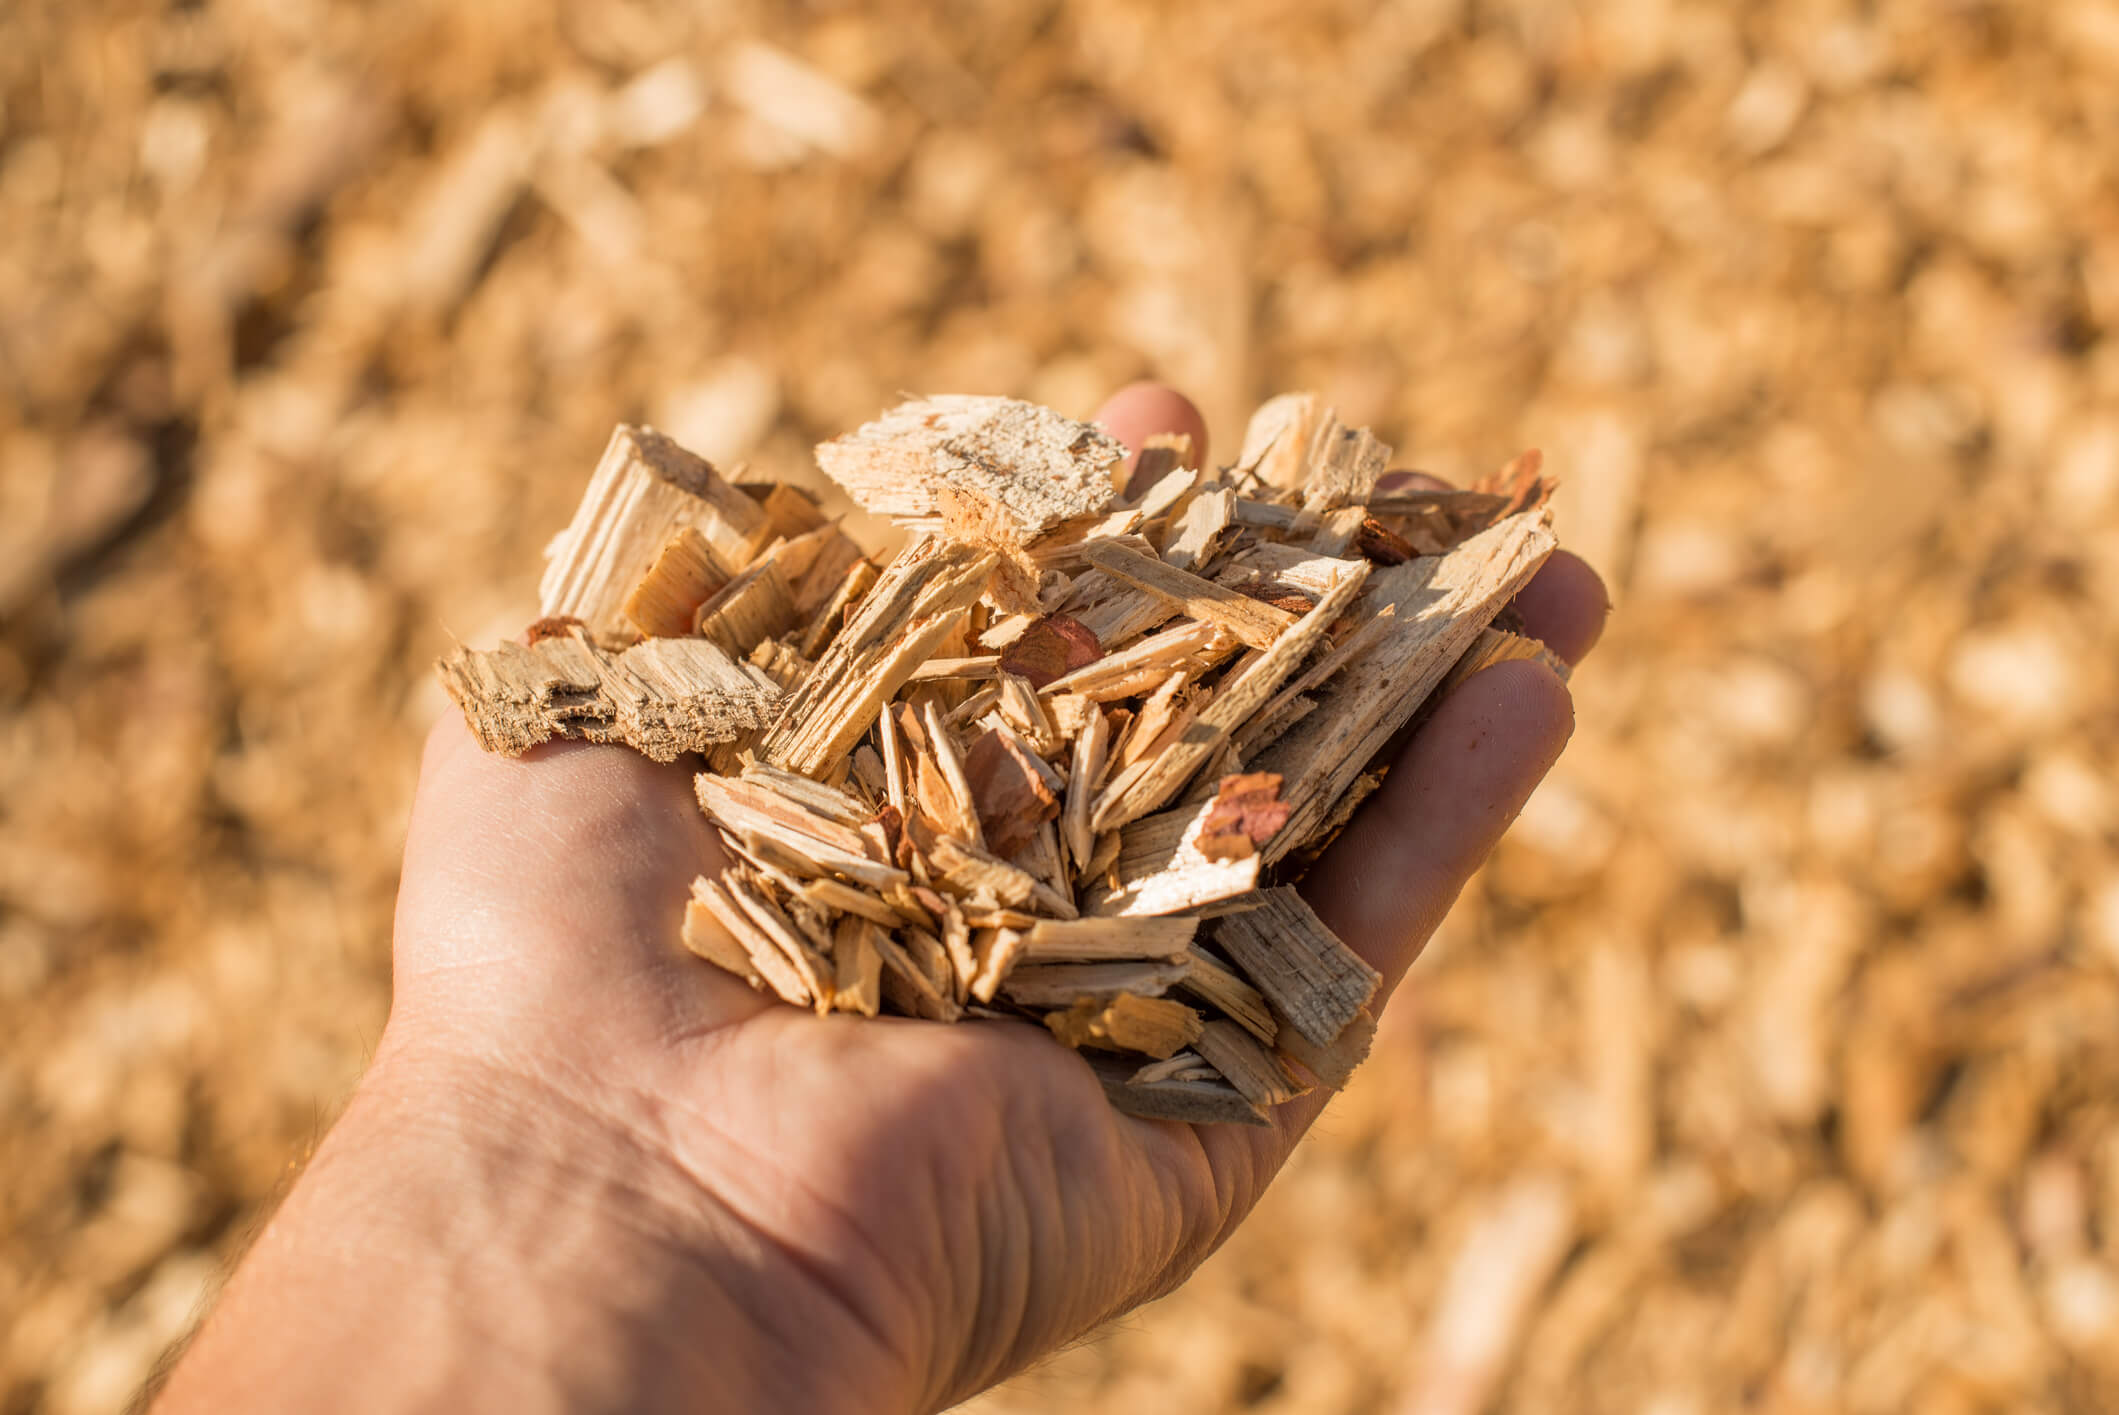 woody biomass to sustainable aviation fuels nwabf